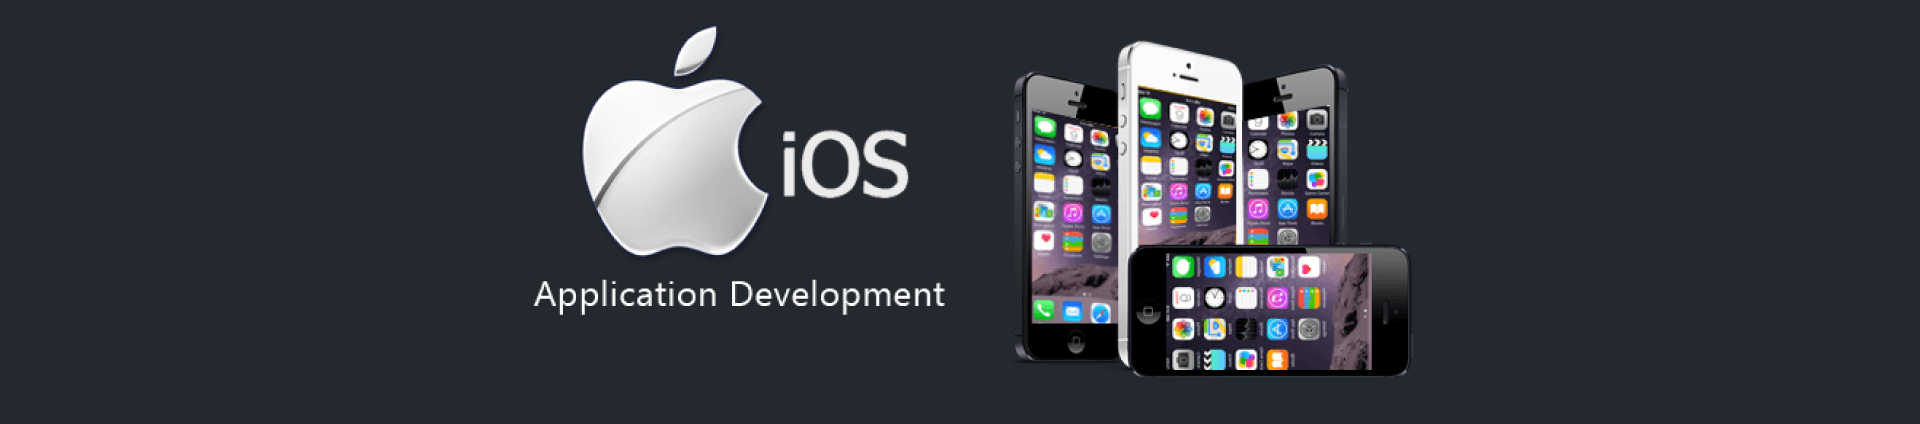 iOS App Development Trends in 2021